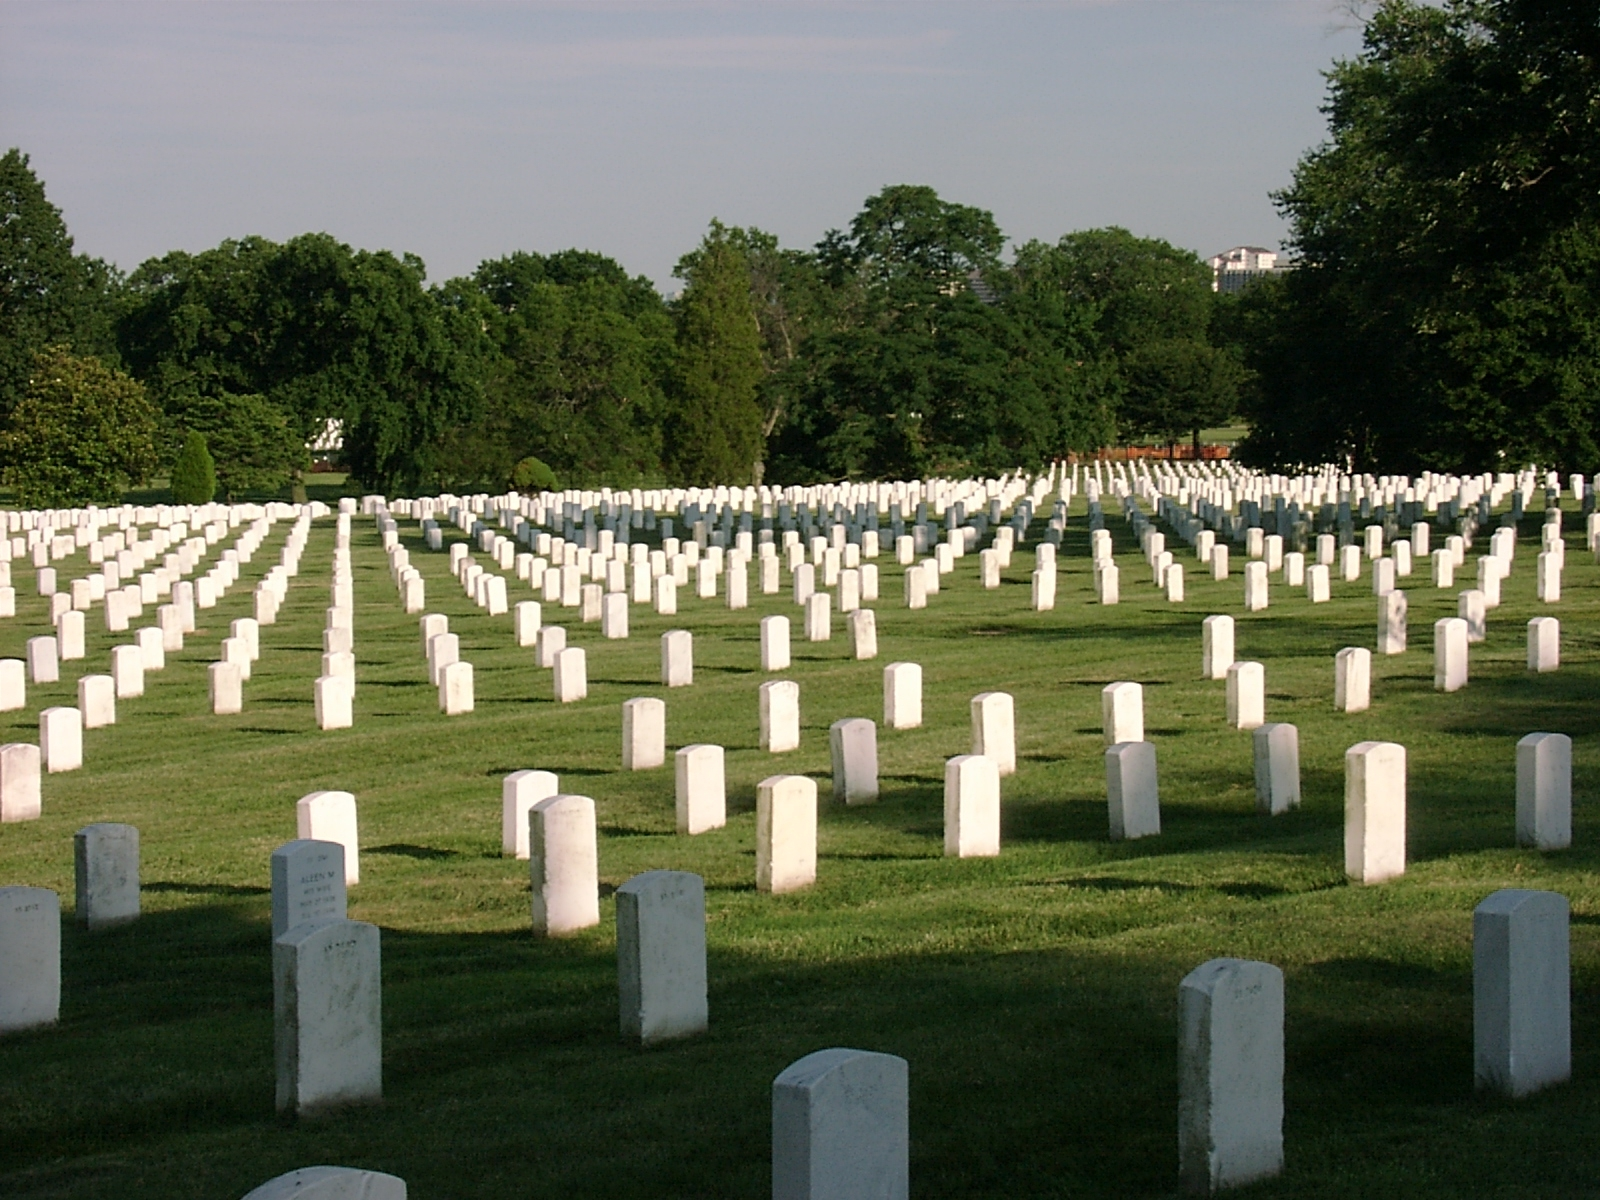 Arlington National Cemetery on an overcast day. Rows of white headstones extend across a green lawn.